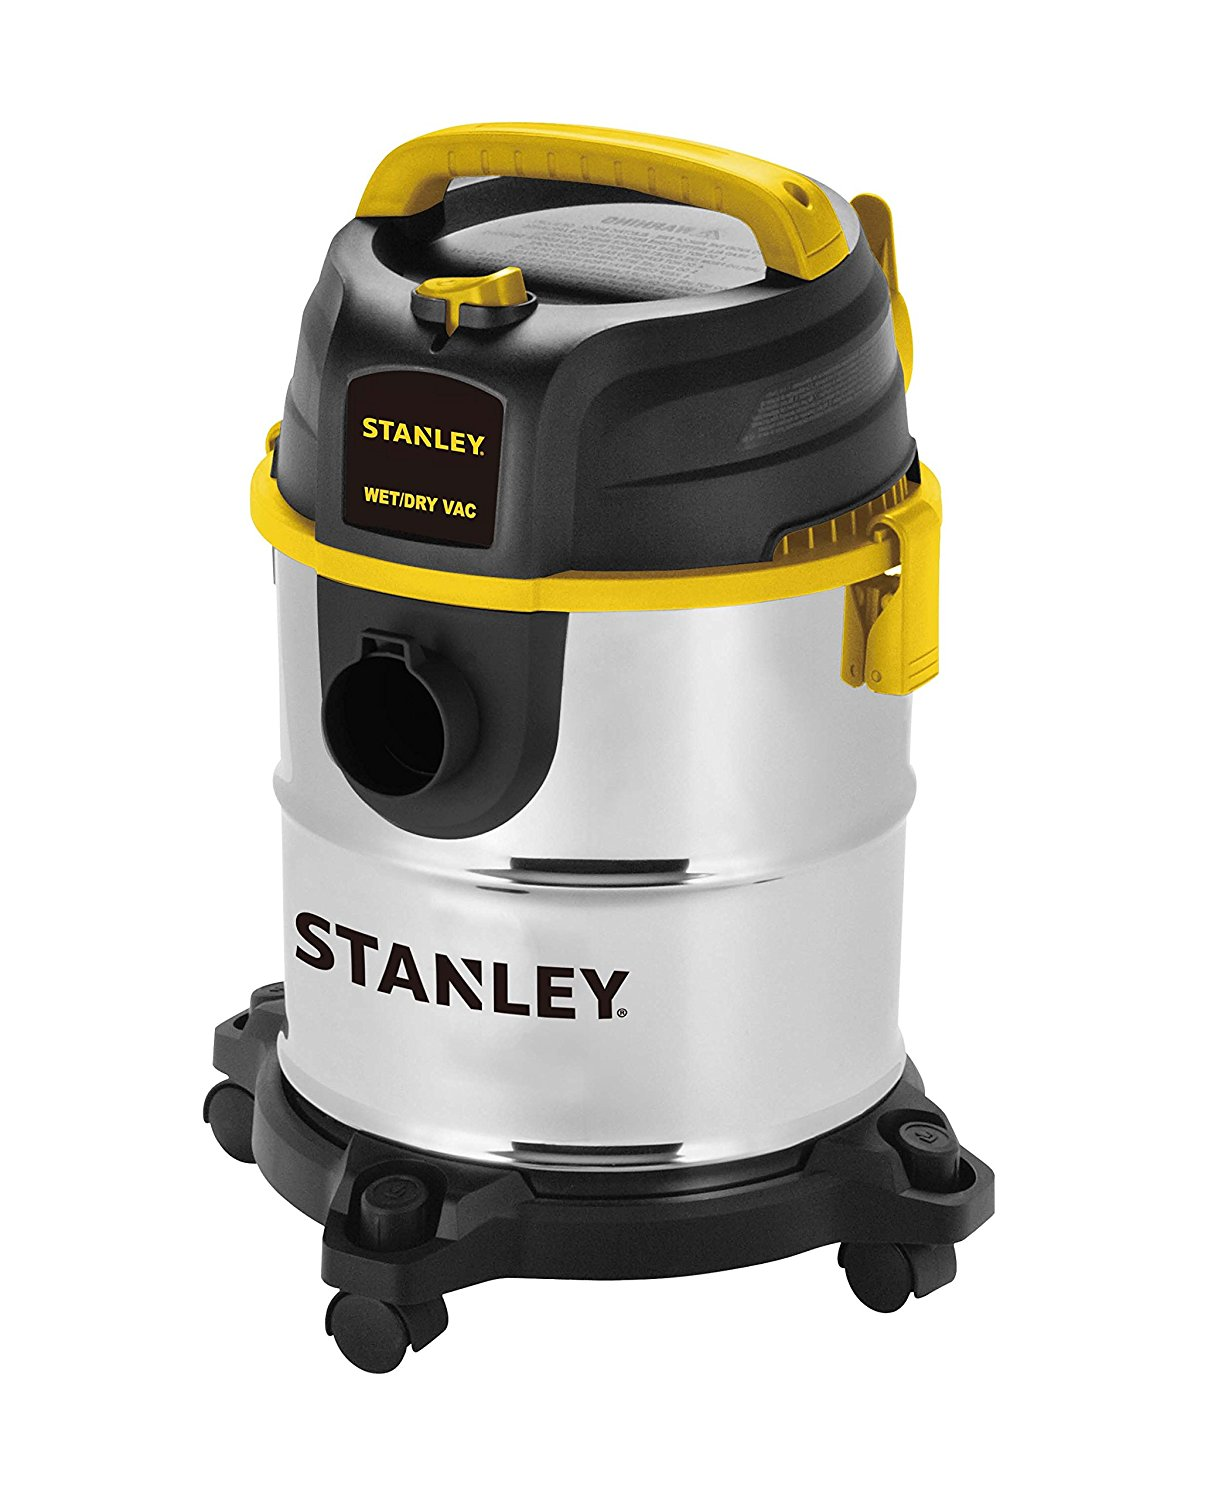 Stanley Wet/Dry Vacuum, 5 Gallon, 4.0 Peak HP 1